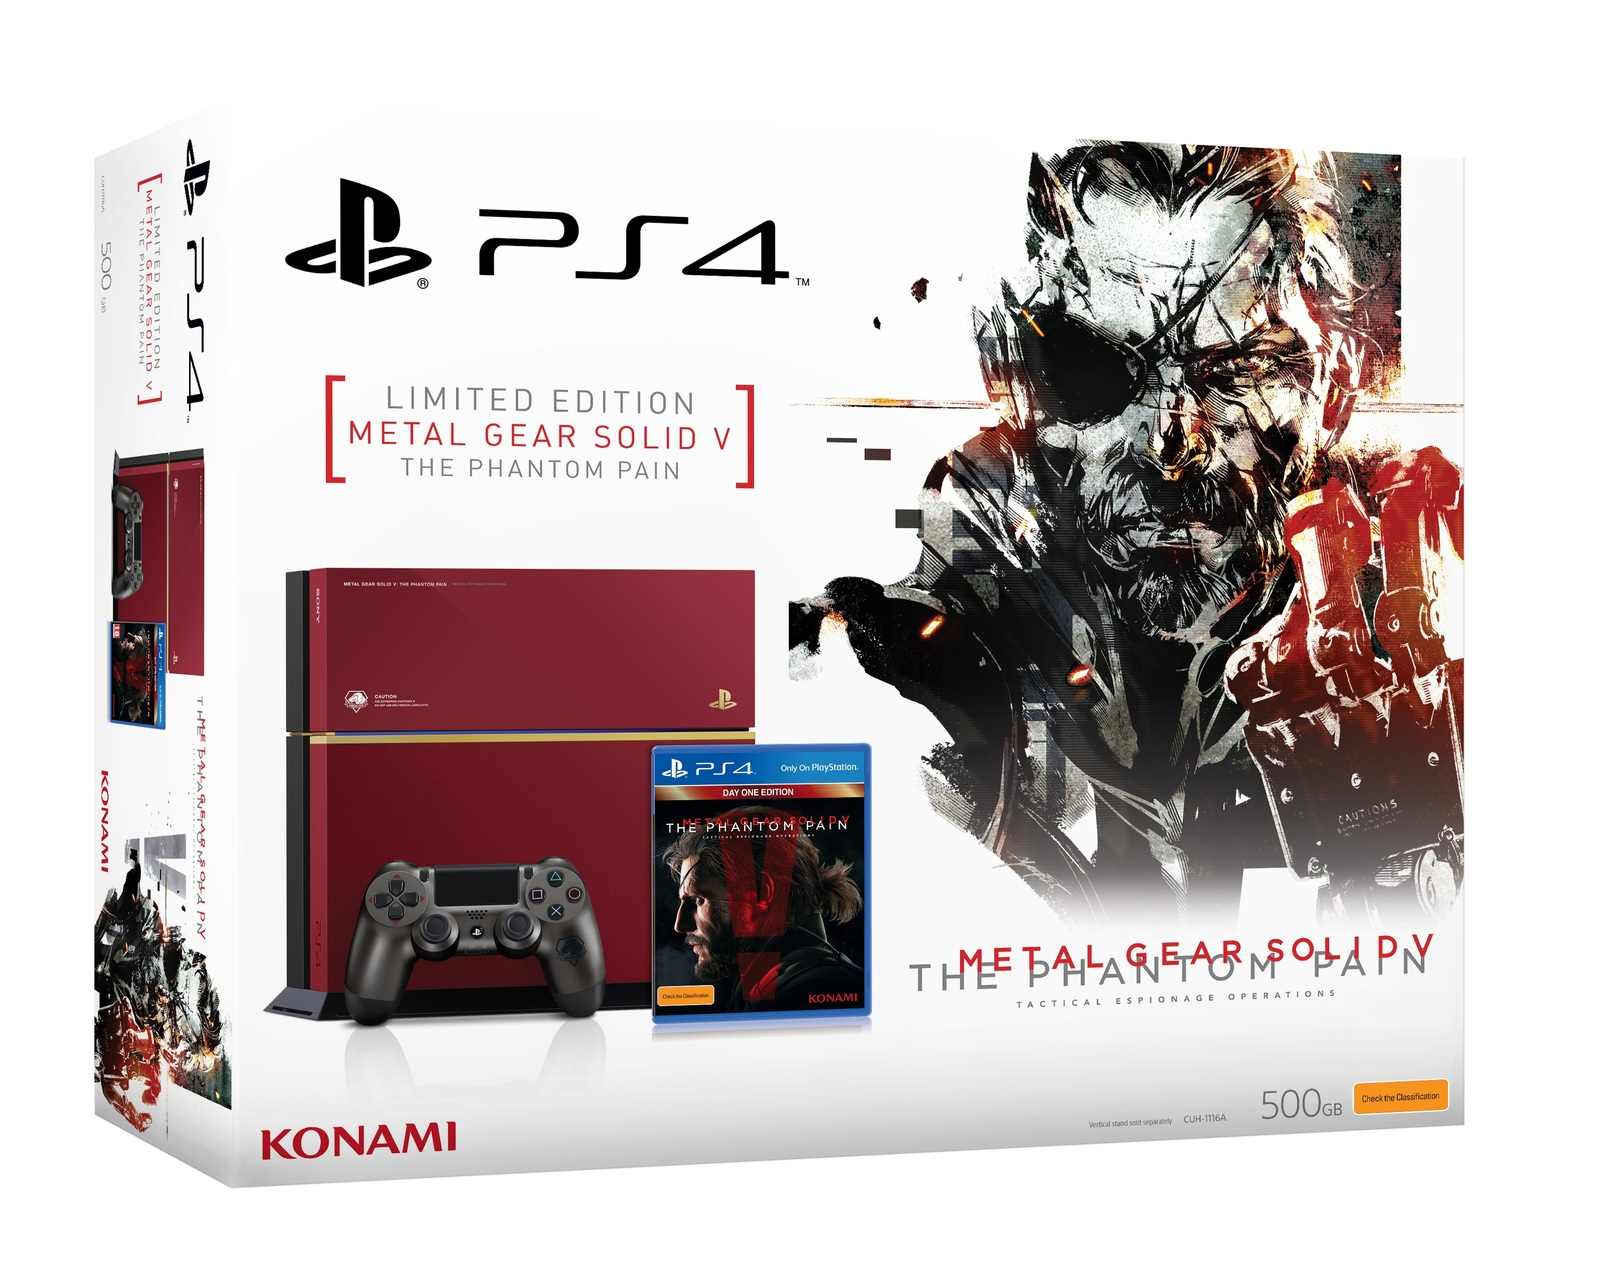 Metal Gear Solid V Ps4 Console Buy Now At Mighty Ape Nz Game The Definitive Experience Phantom Pain Bundle For Image